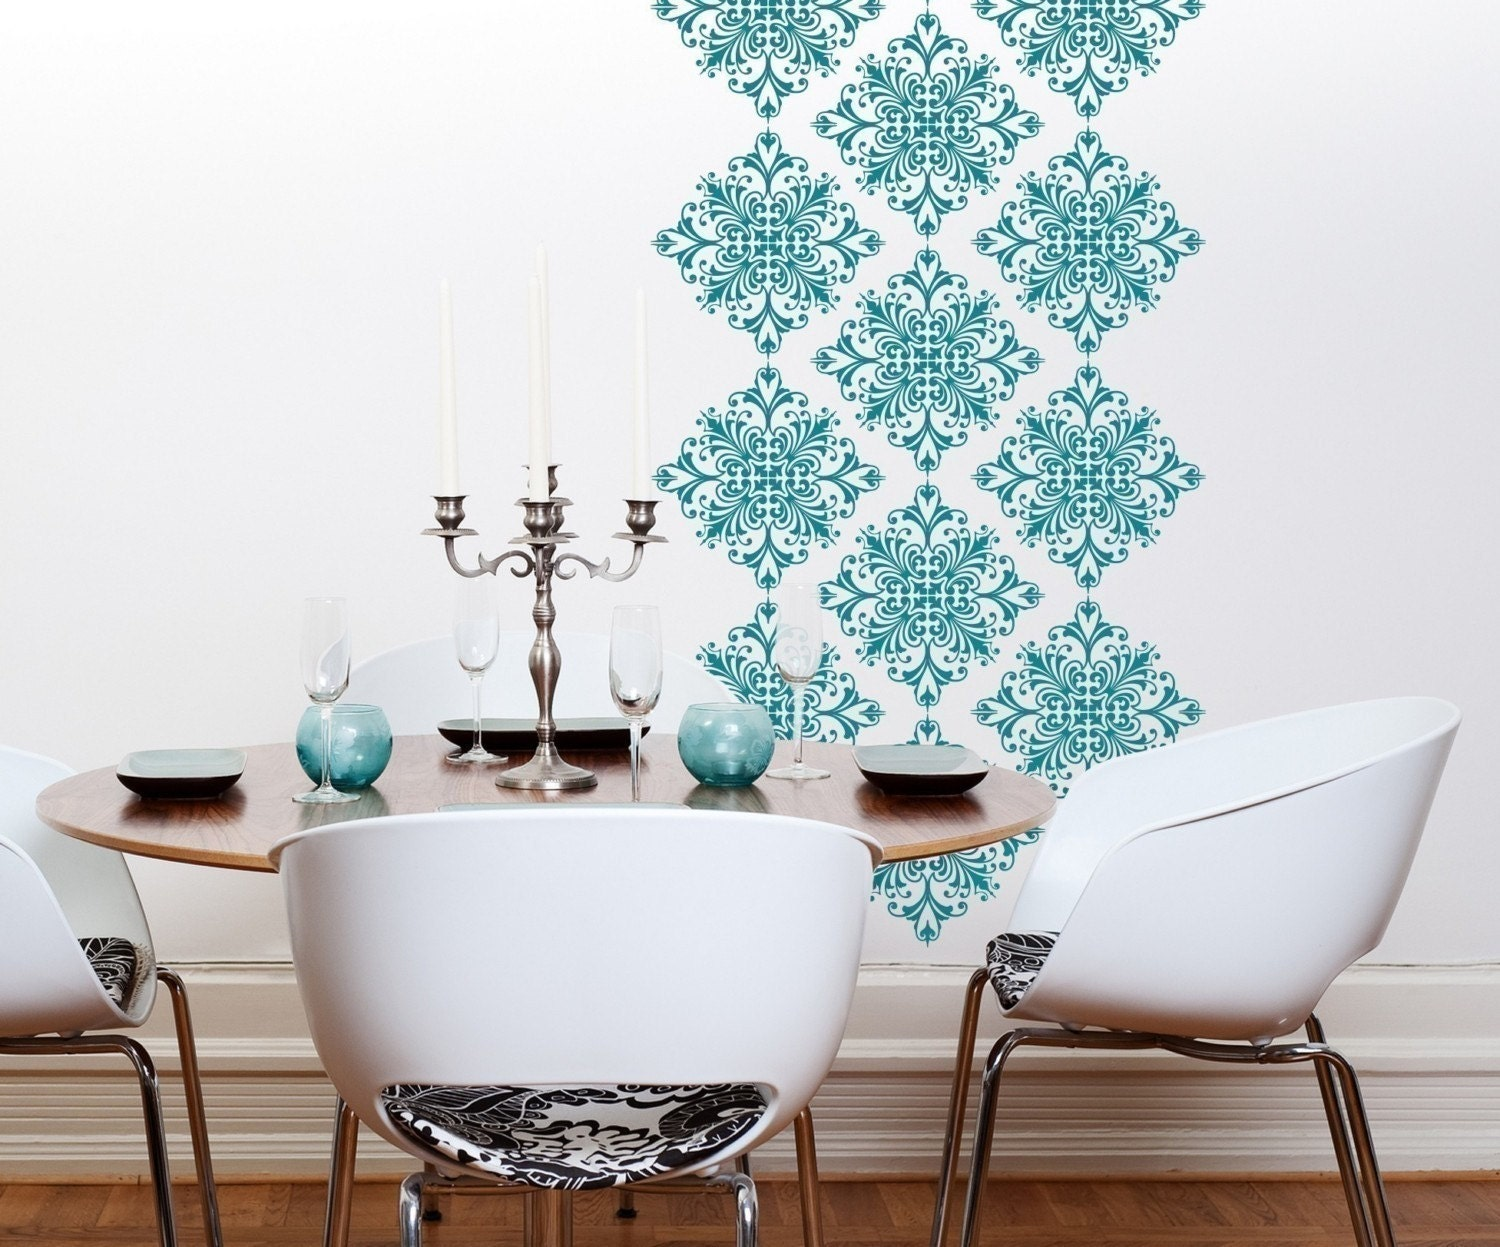 Vinyl wall decals scroll damask wall pattern 18 graphics zoom amipublicfo Image collections